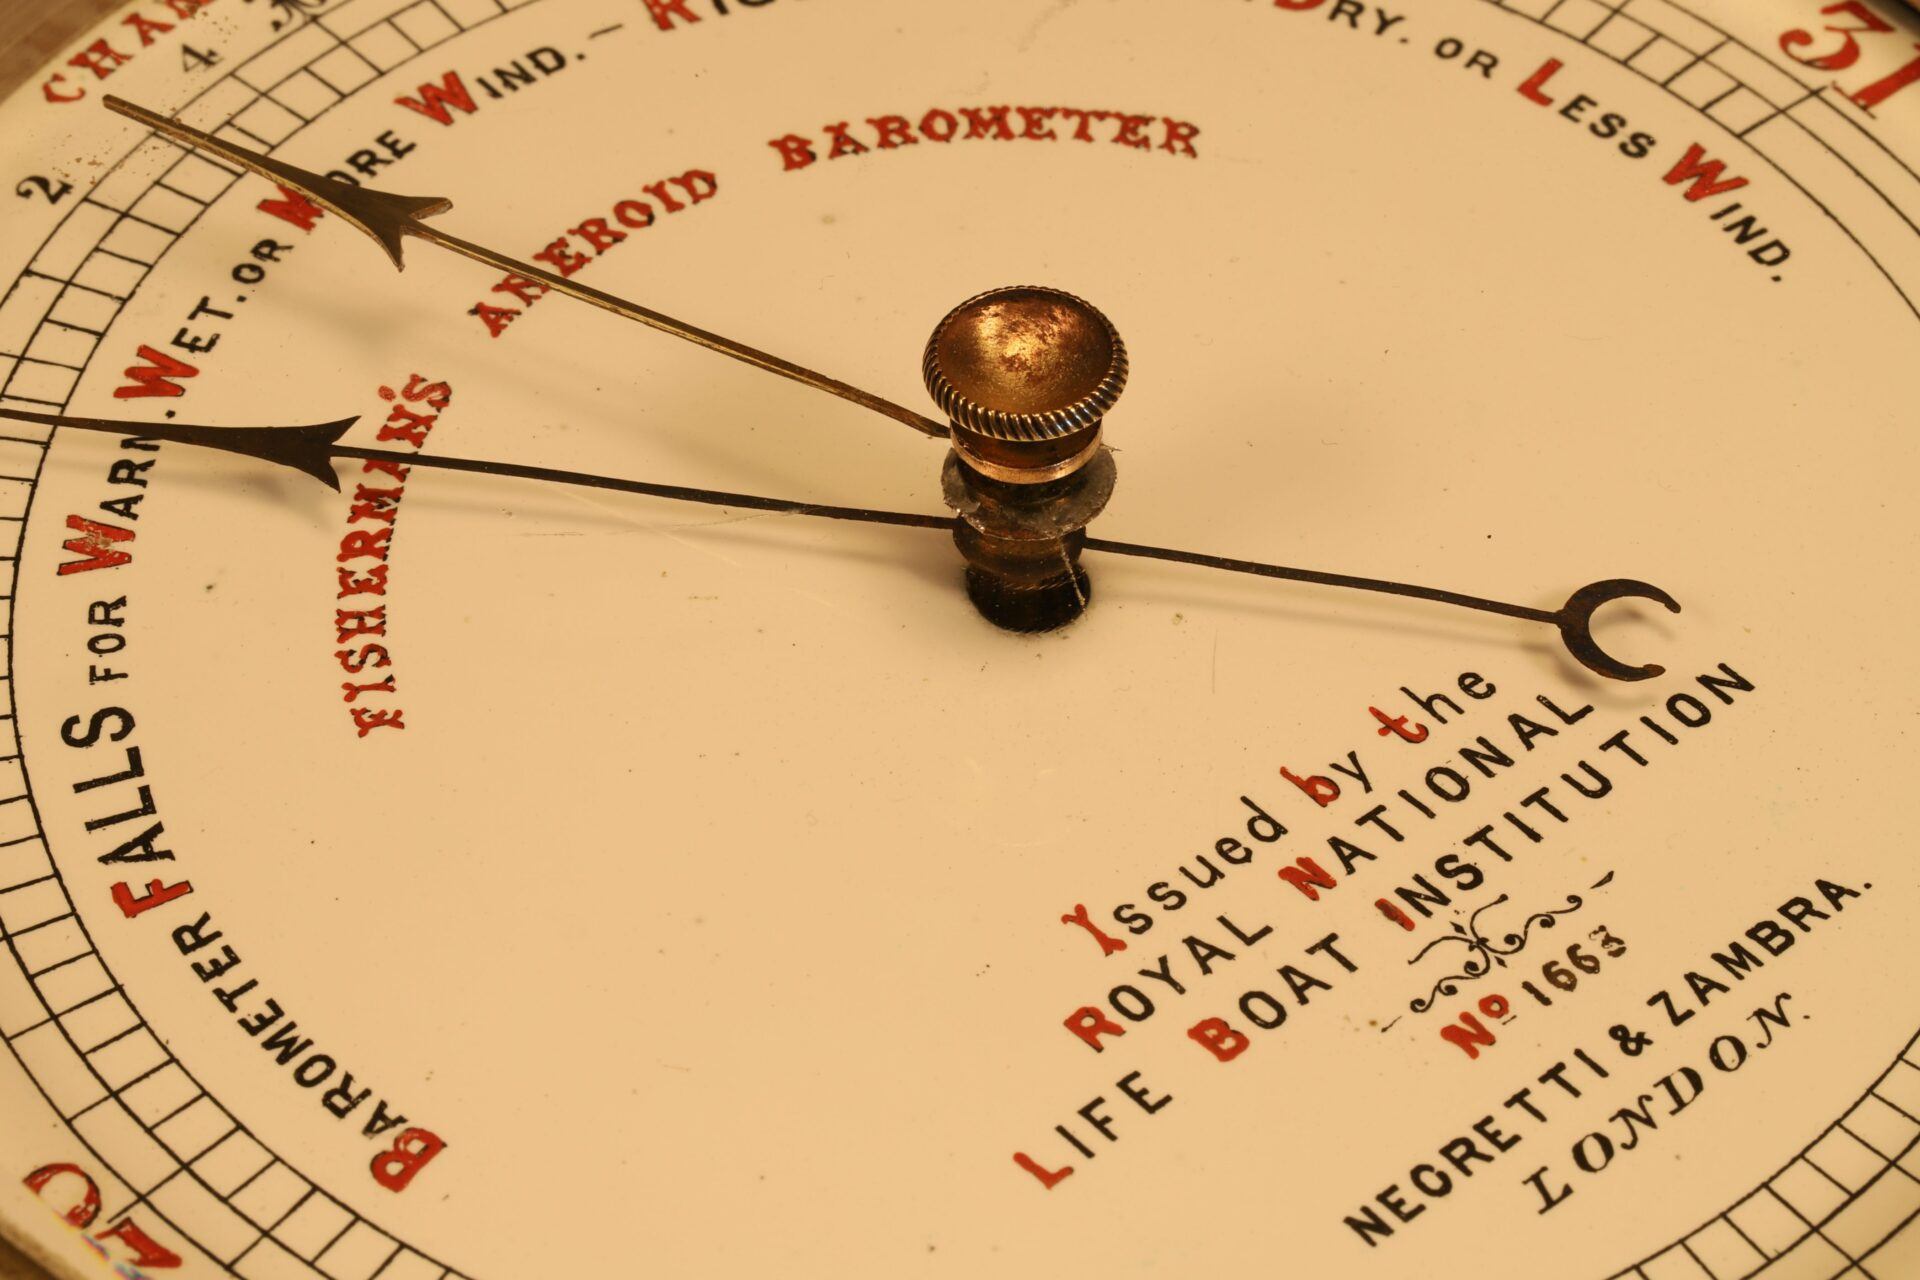 Close up of dial from Negretti & Zambra RNLI Fishermans Aneroid Barometer No 1663 showing pointer and telltale taken from lefthand side